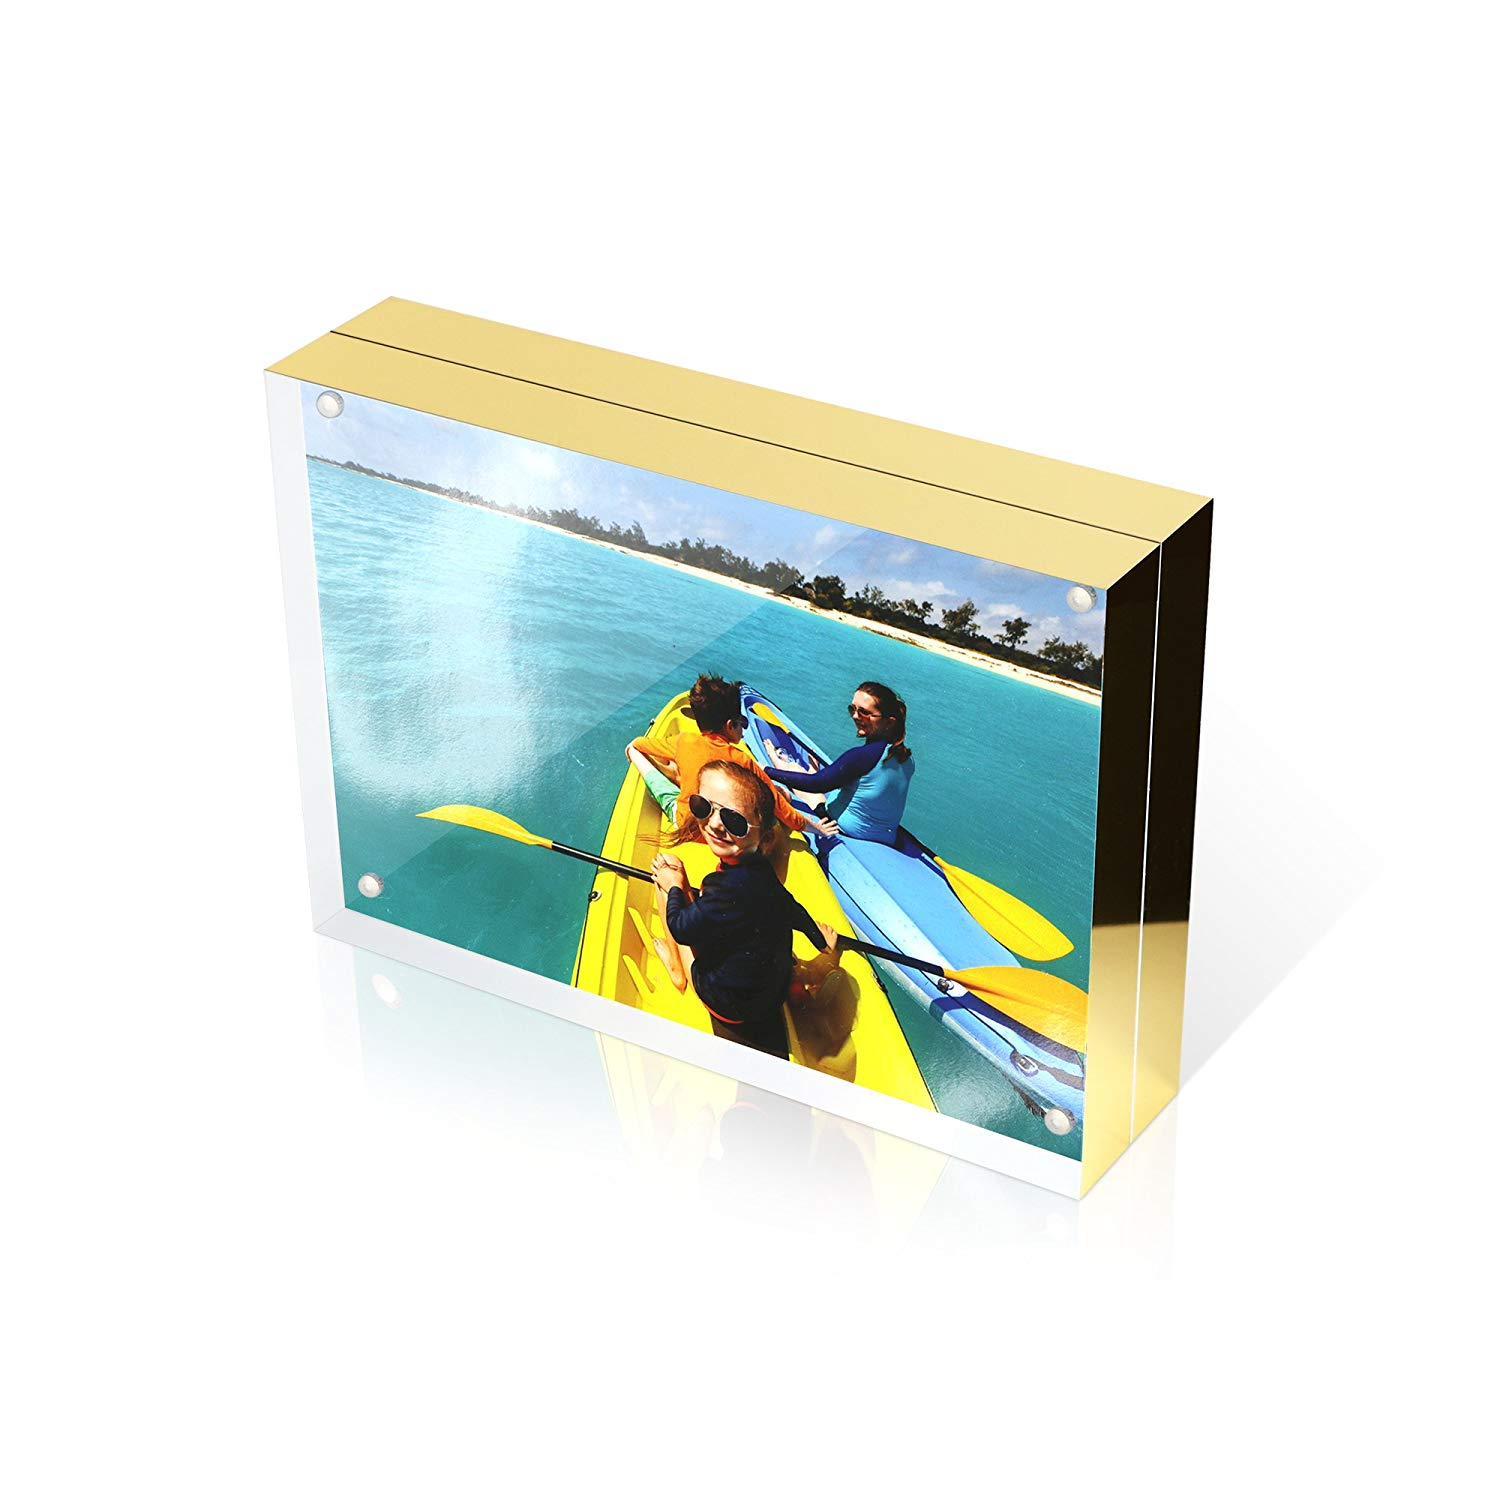 a998fab1c230 Get Quotations · 4X6 Double Sided Picture Frame - Magnetic Clear Acrylic  Photo Frames with Microfiber Cloth and Black